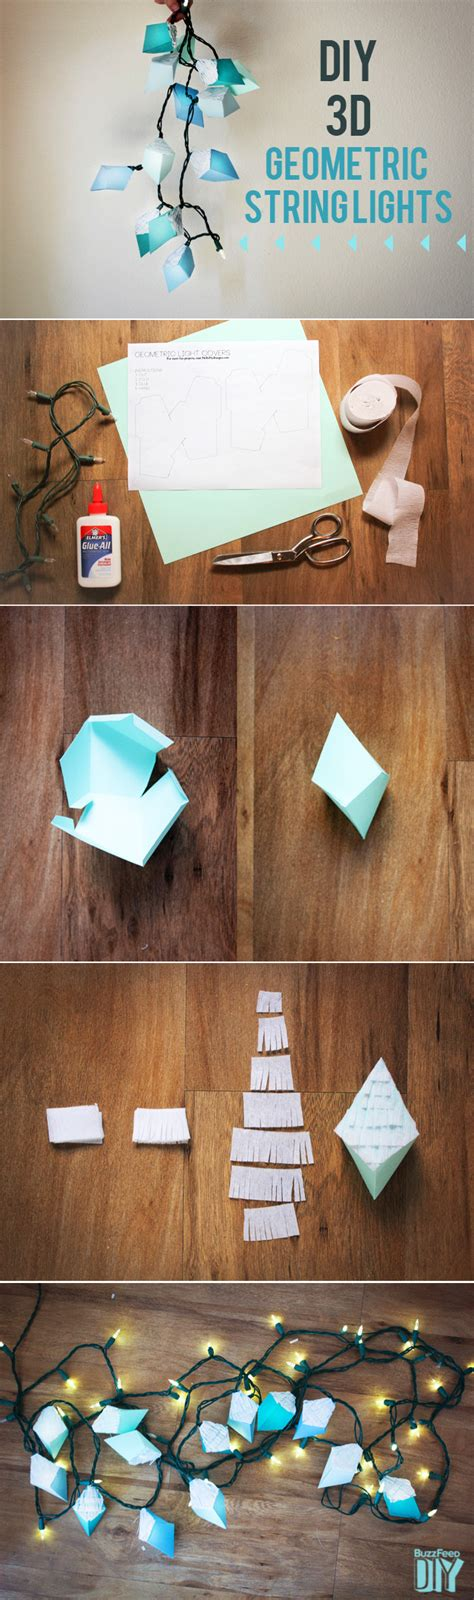 How To Make Decorations For Your Room Out Of Paper - 33 awesome diy string light ideas diy projects for